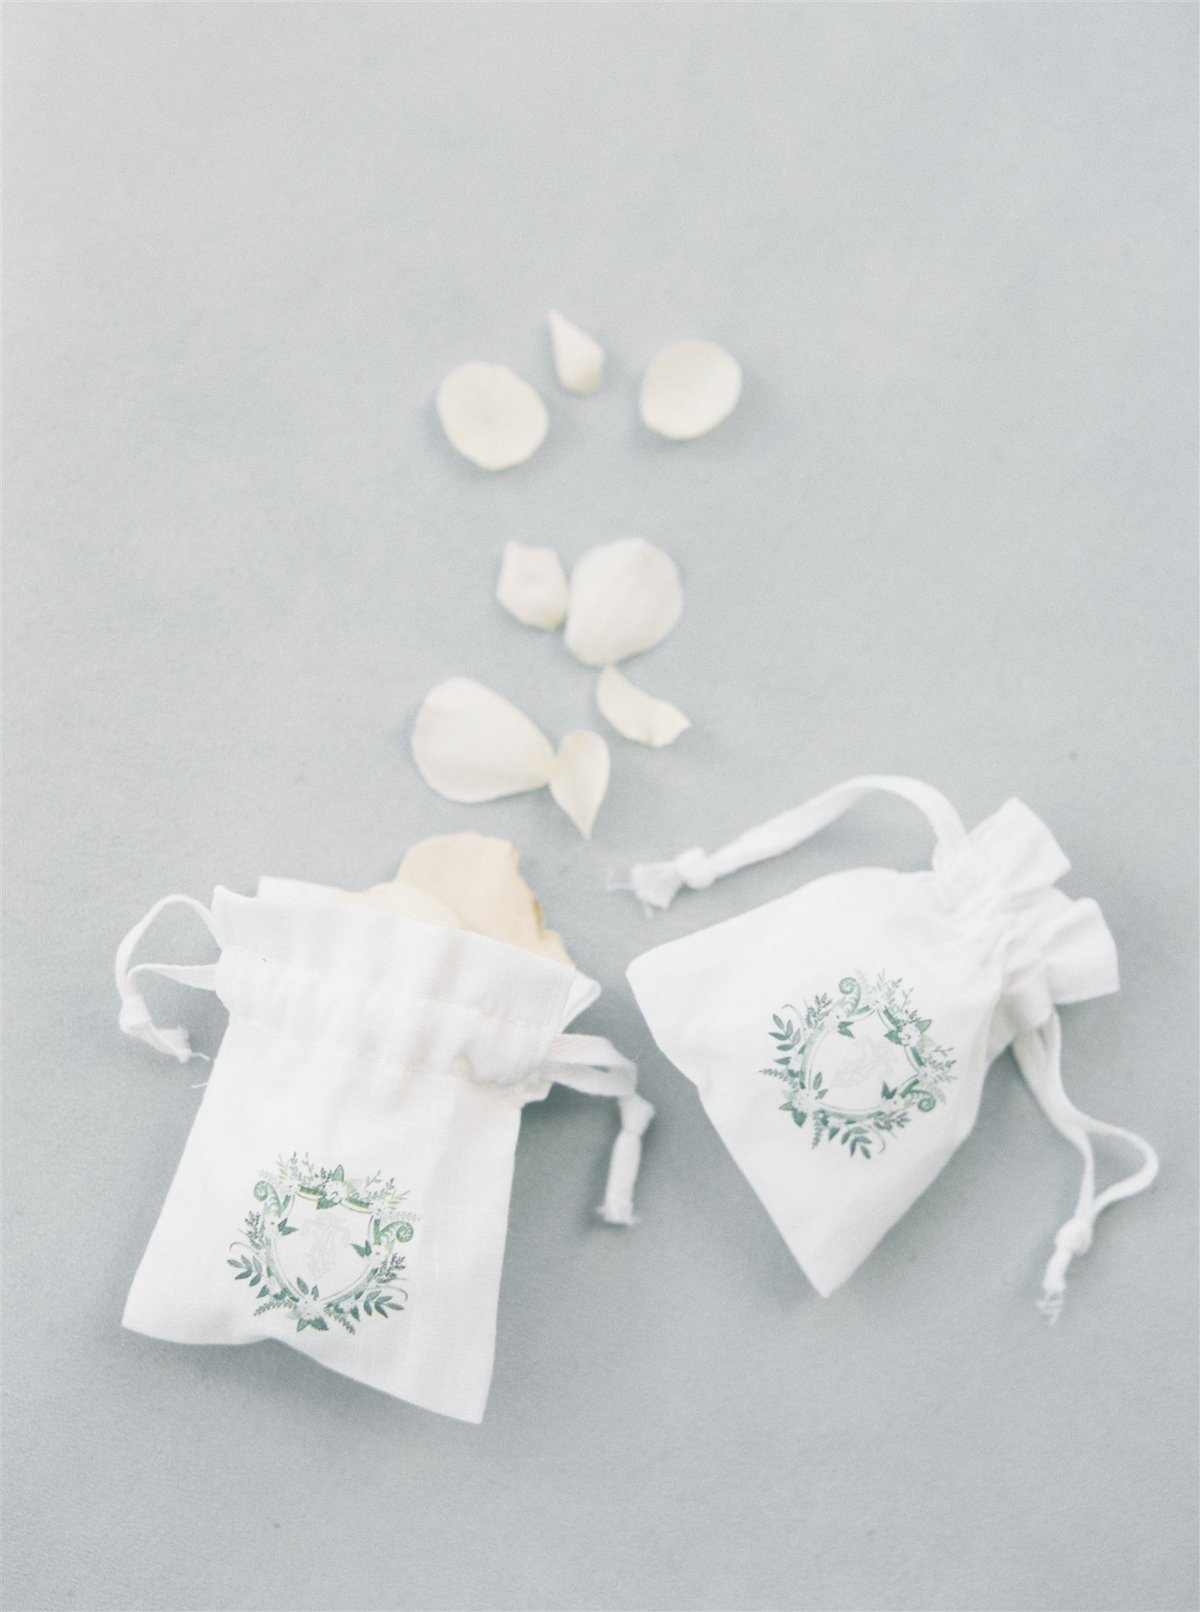 Monogrammed Rose Petal bags for ceremony for a Cape Cod Wedding by luxury Cape Cod wedding planner and designer Always Yours Events